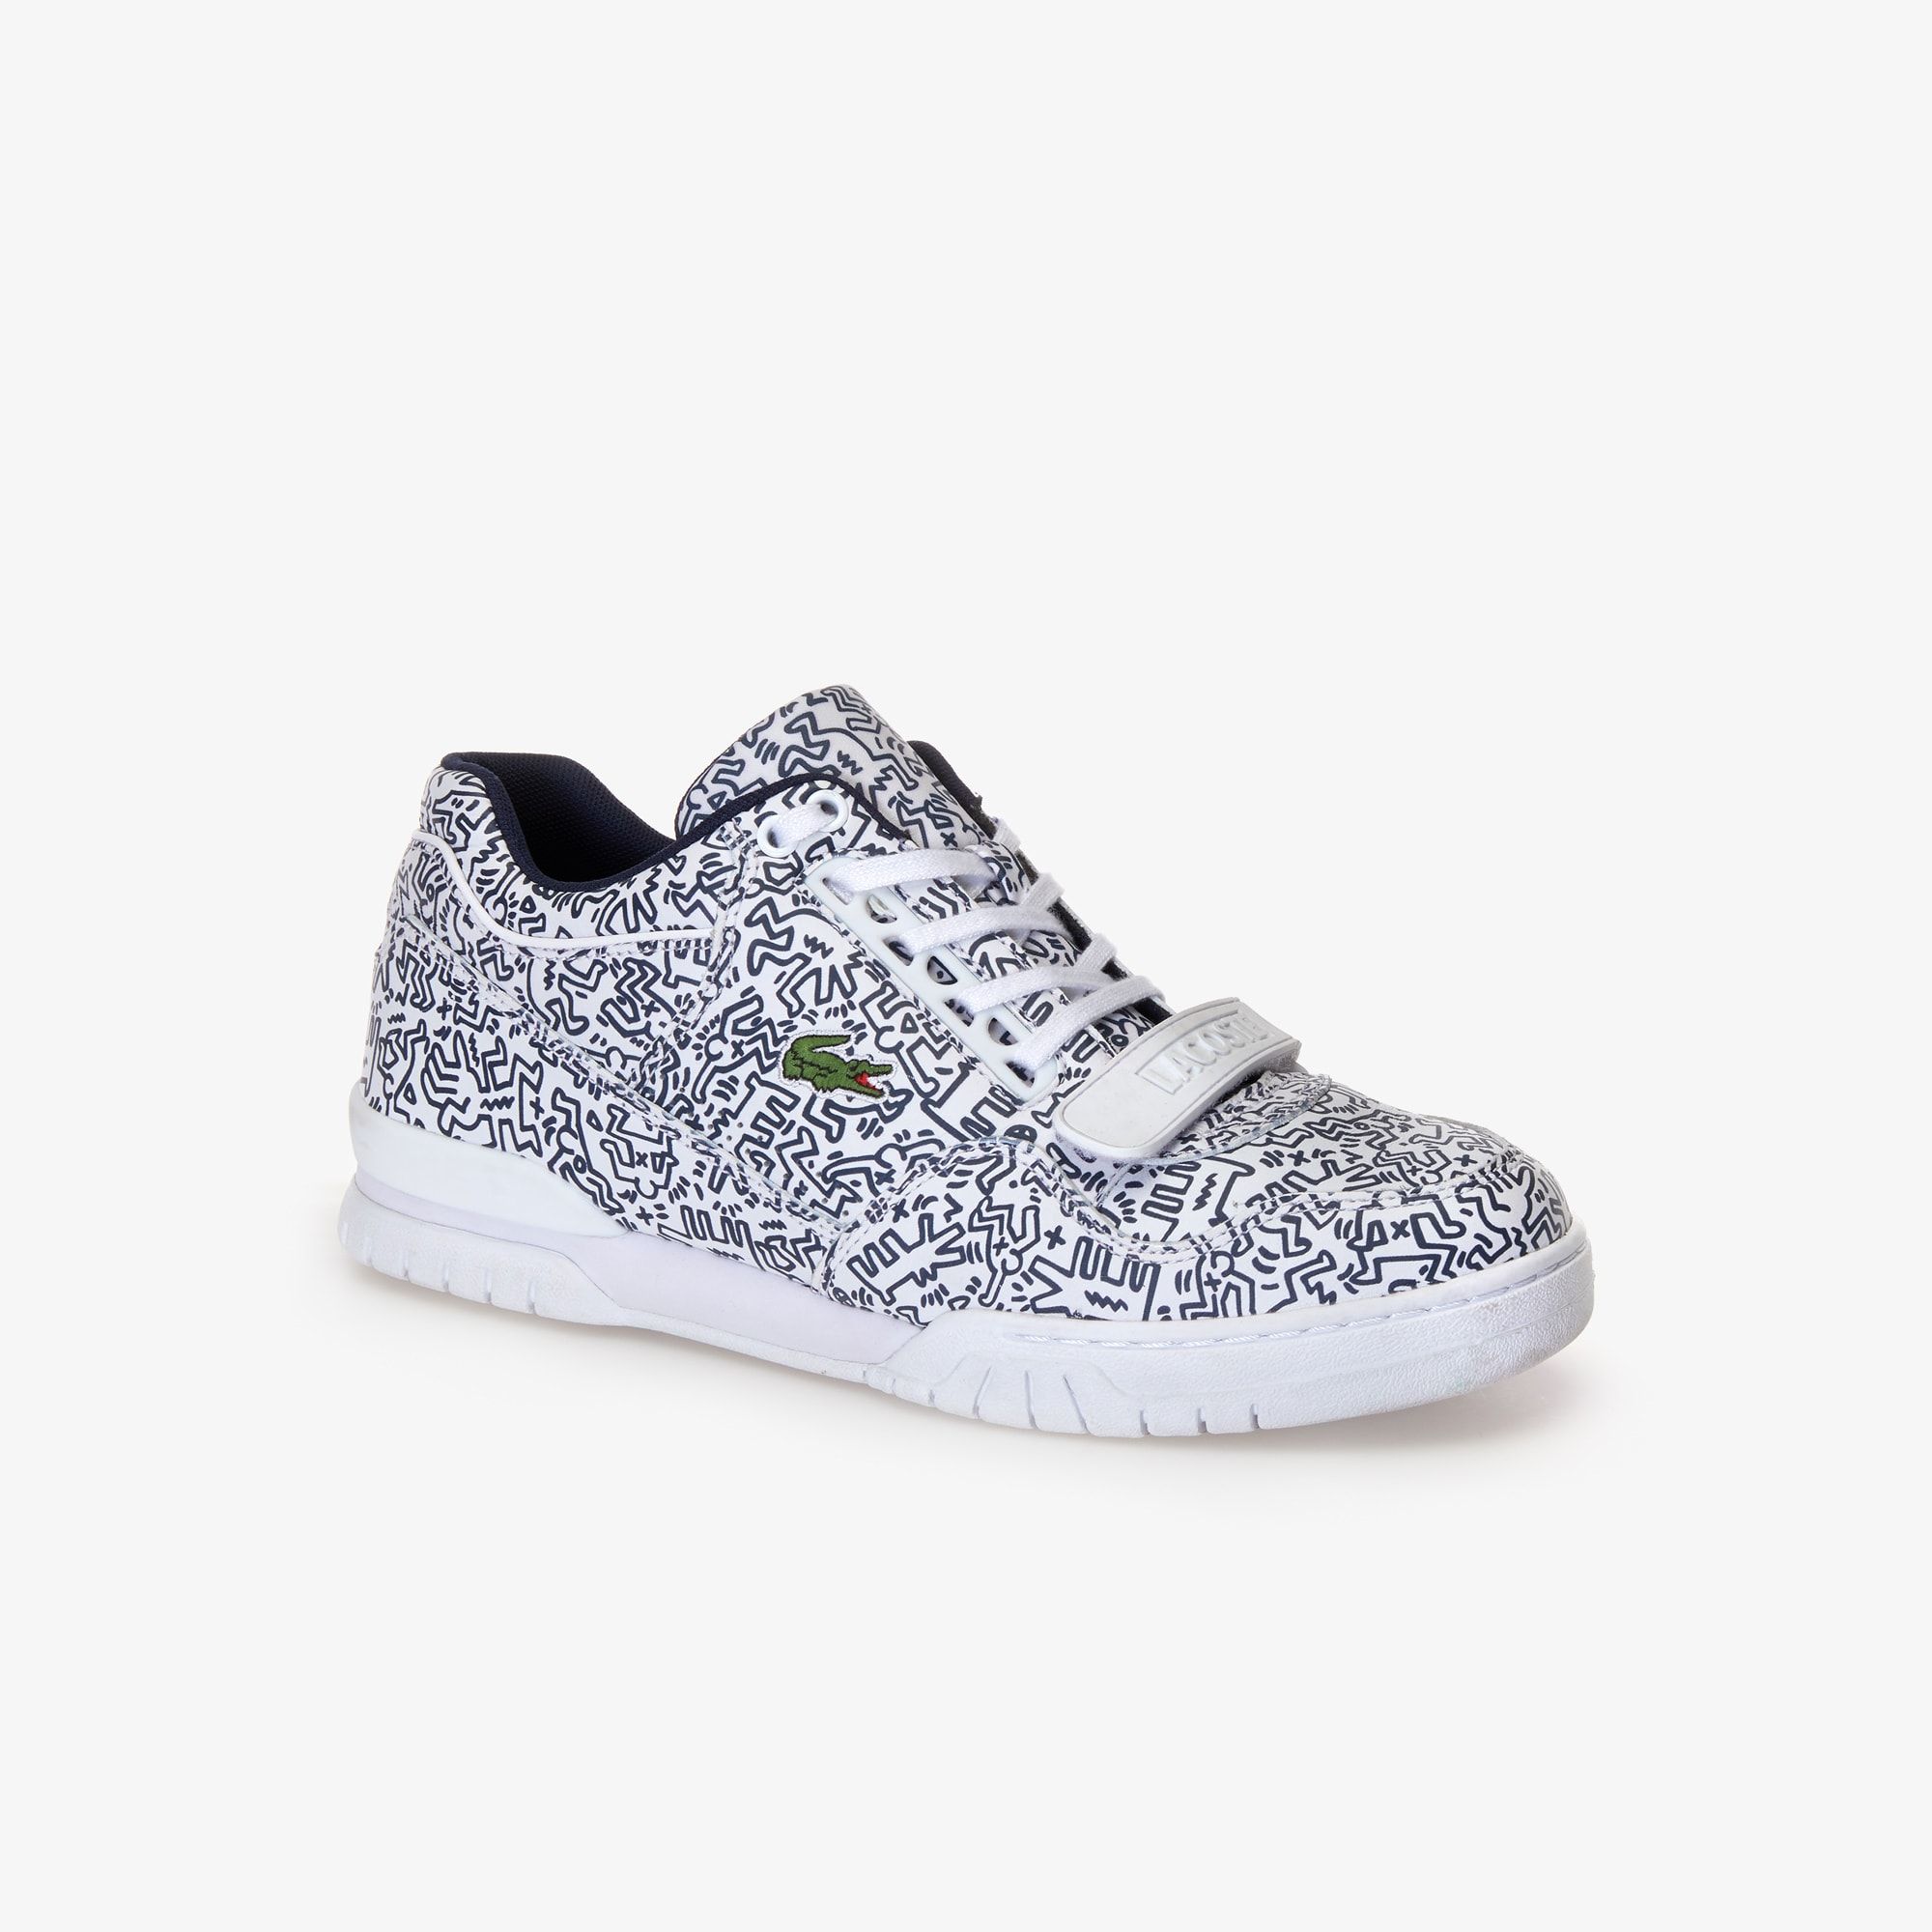 2f285ced43 Men's Missouri Keith Haring Leather Sneakers | LACOSTE